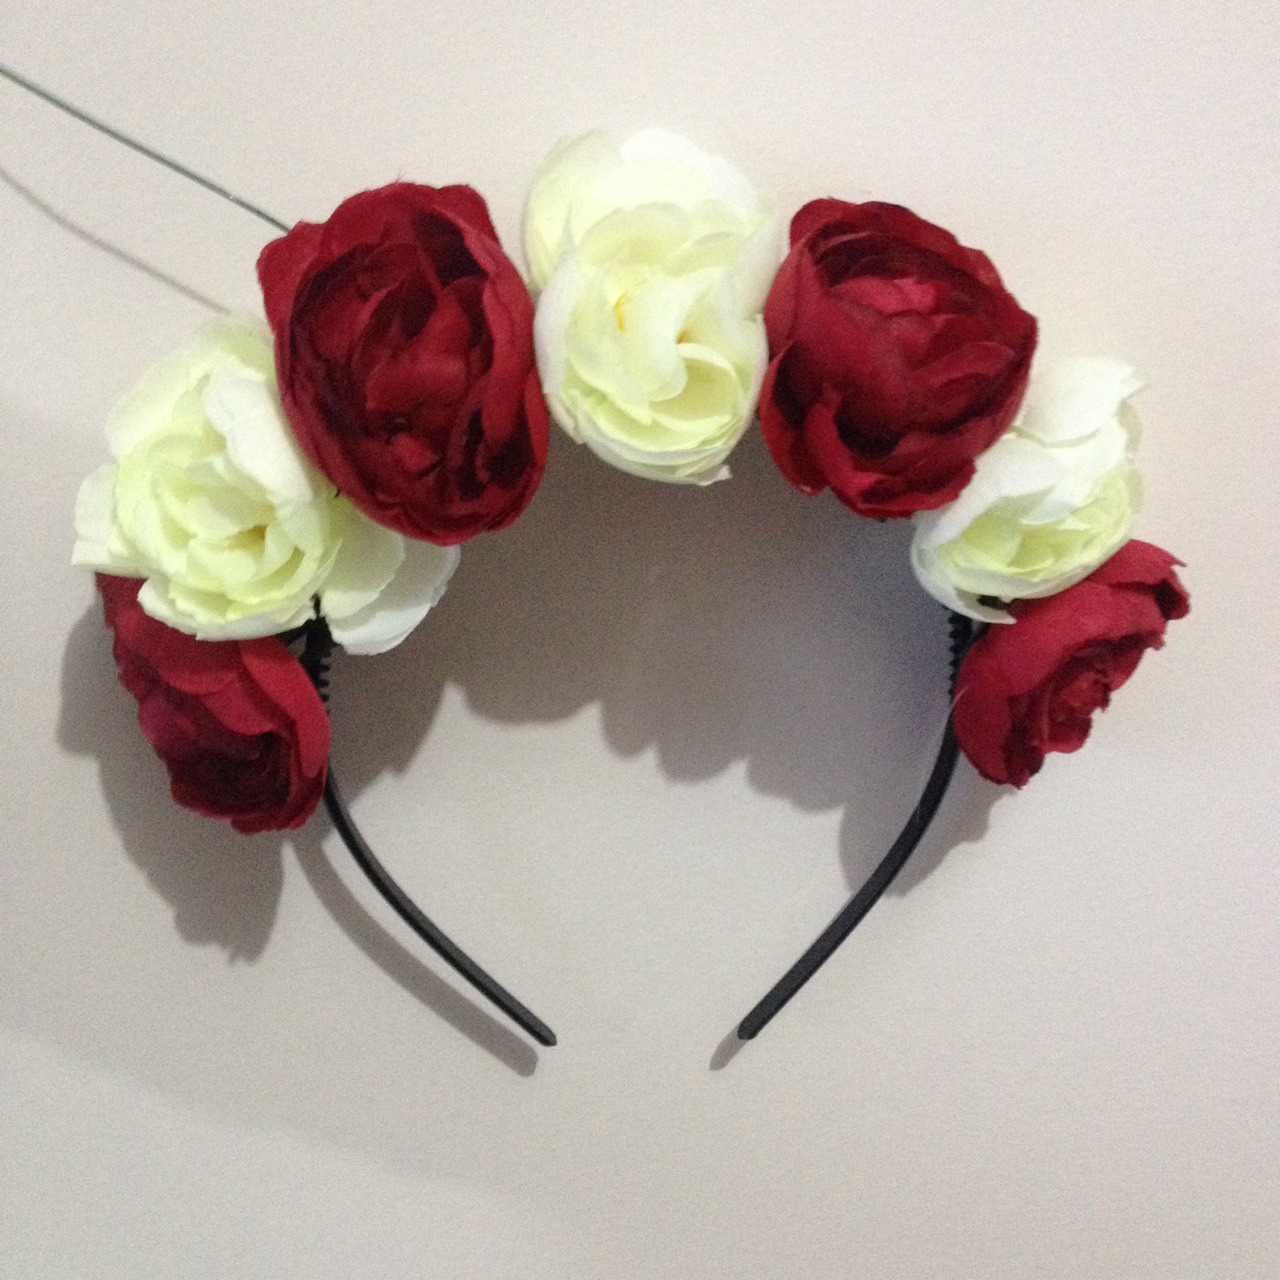 Creamwhite and red rose flower crown rixie online store powered creamwhite and red rose flower crown izmirmasajfo